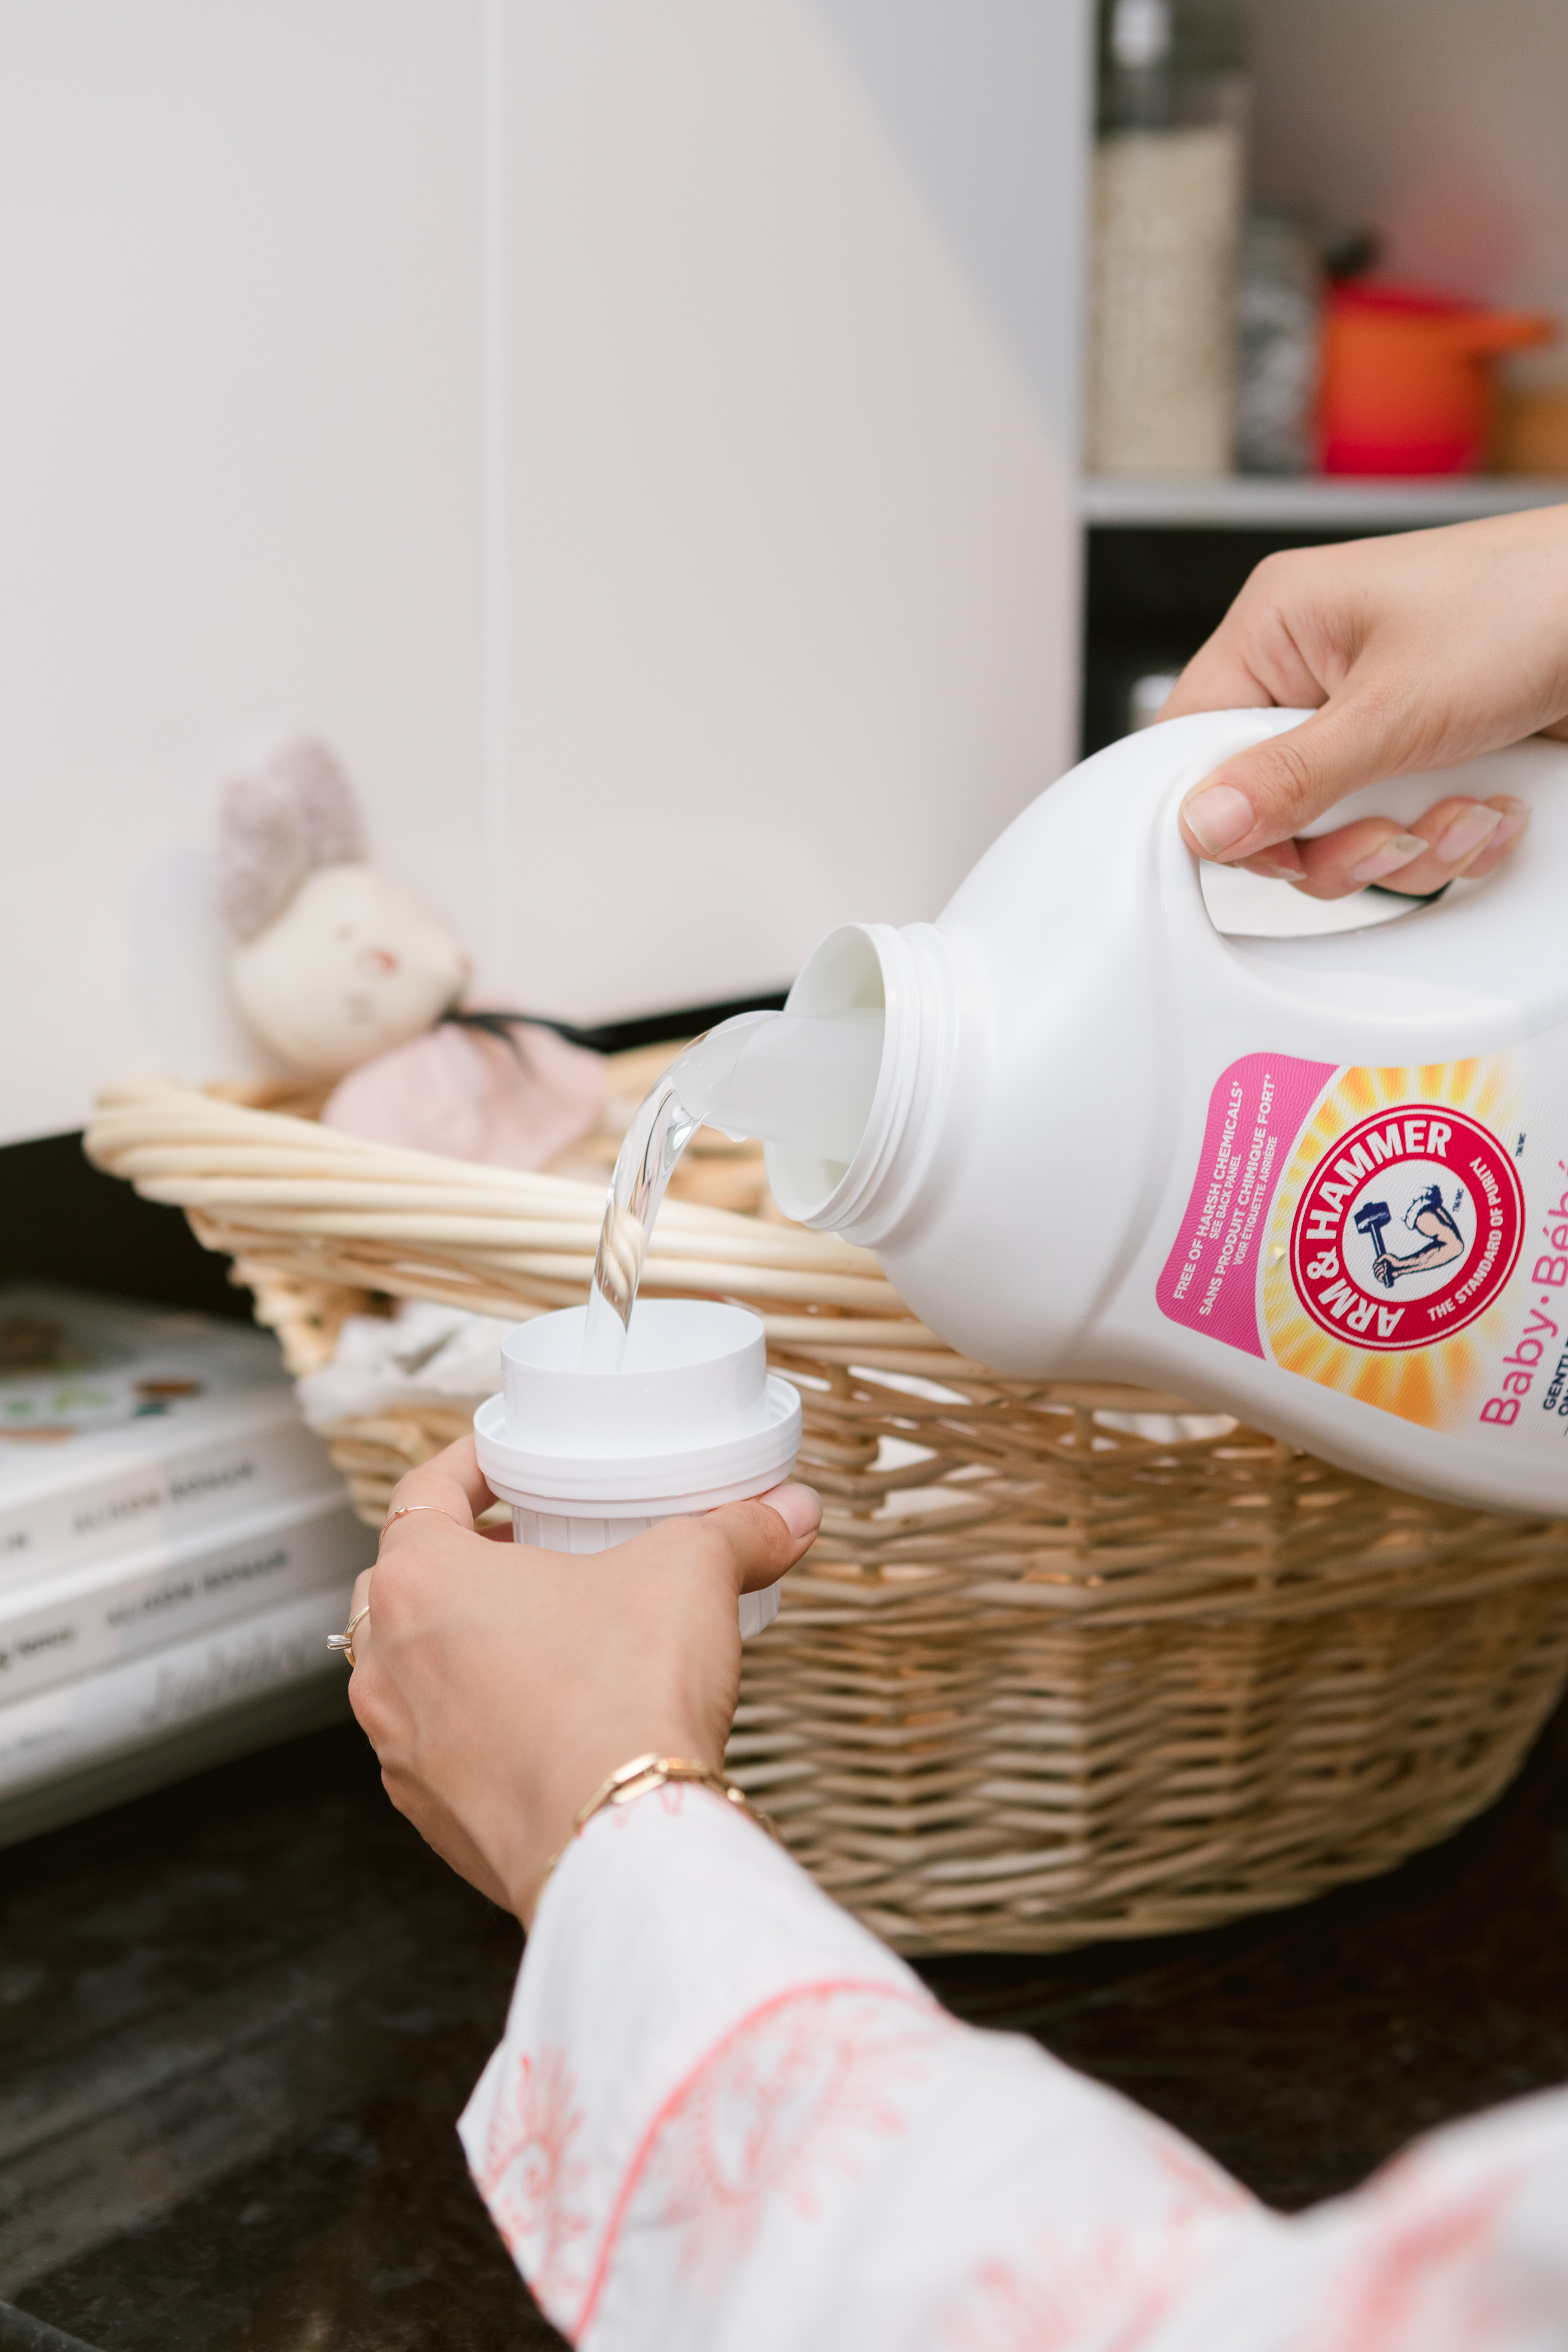 Pouring laundry detergent into the cup